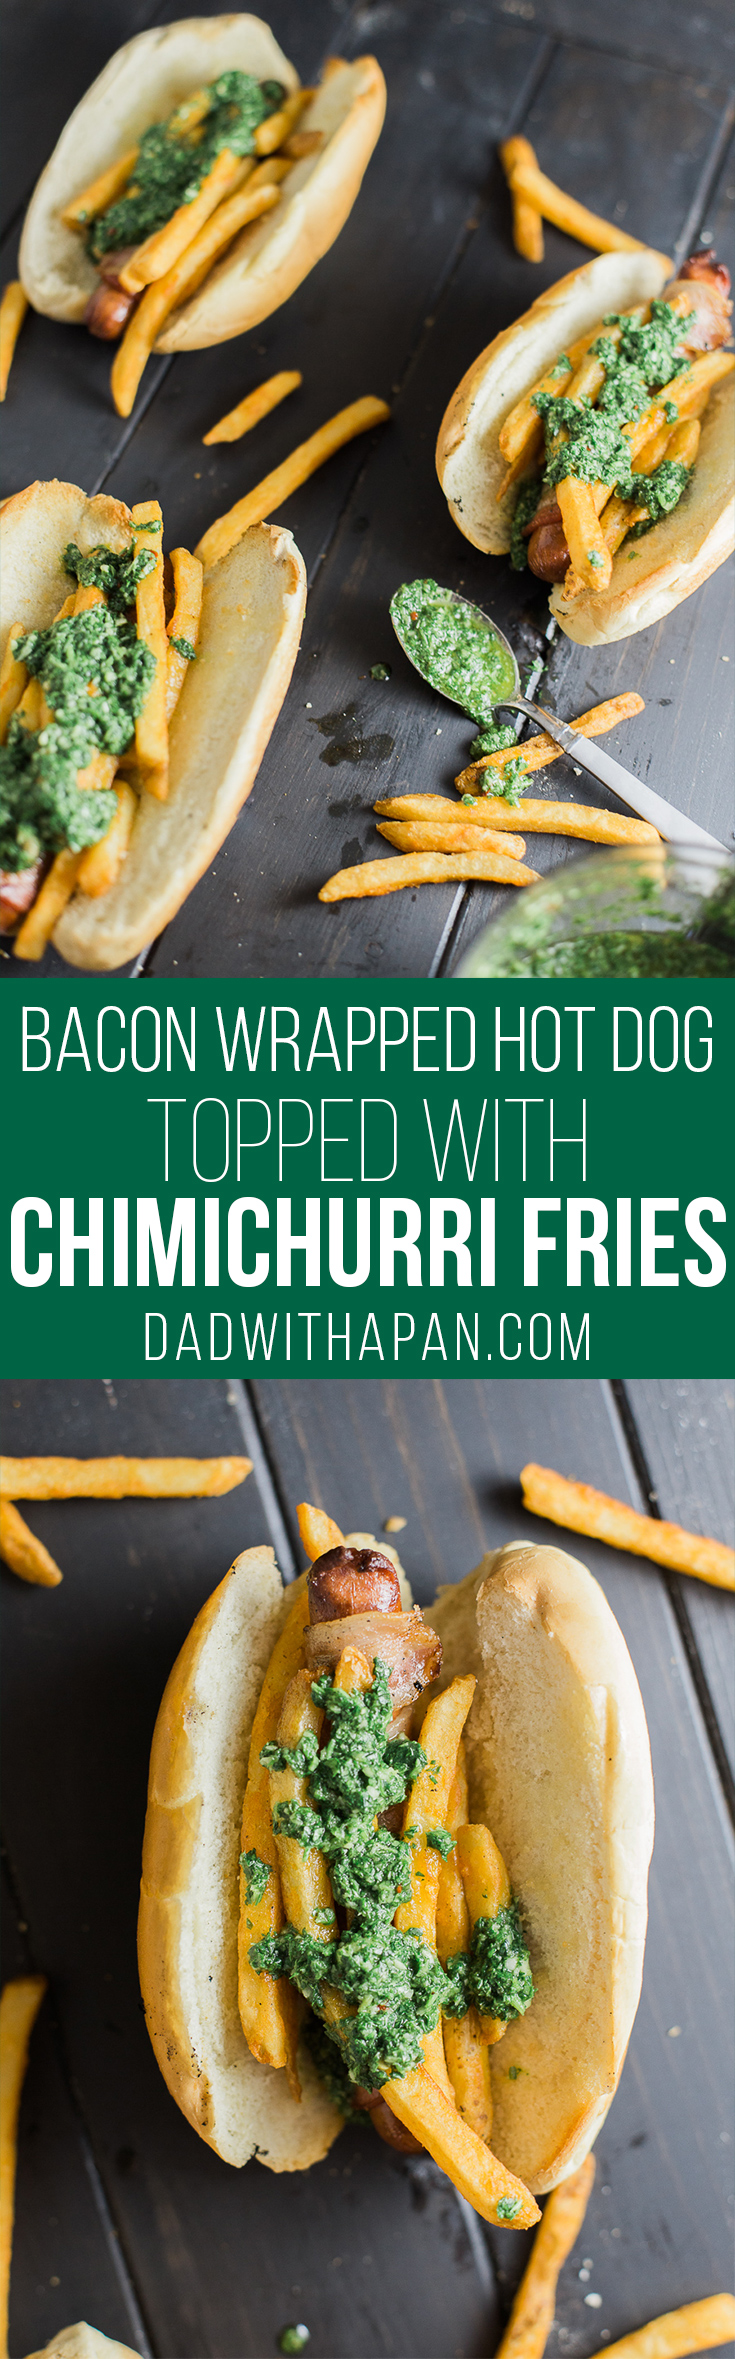 Chimichurri Fries on a bacon wrapped hot dog. YESSS!! - Dad With A Pan #Chimichurri #HotDog #Foodie